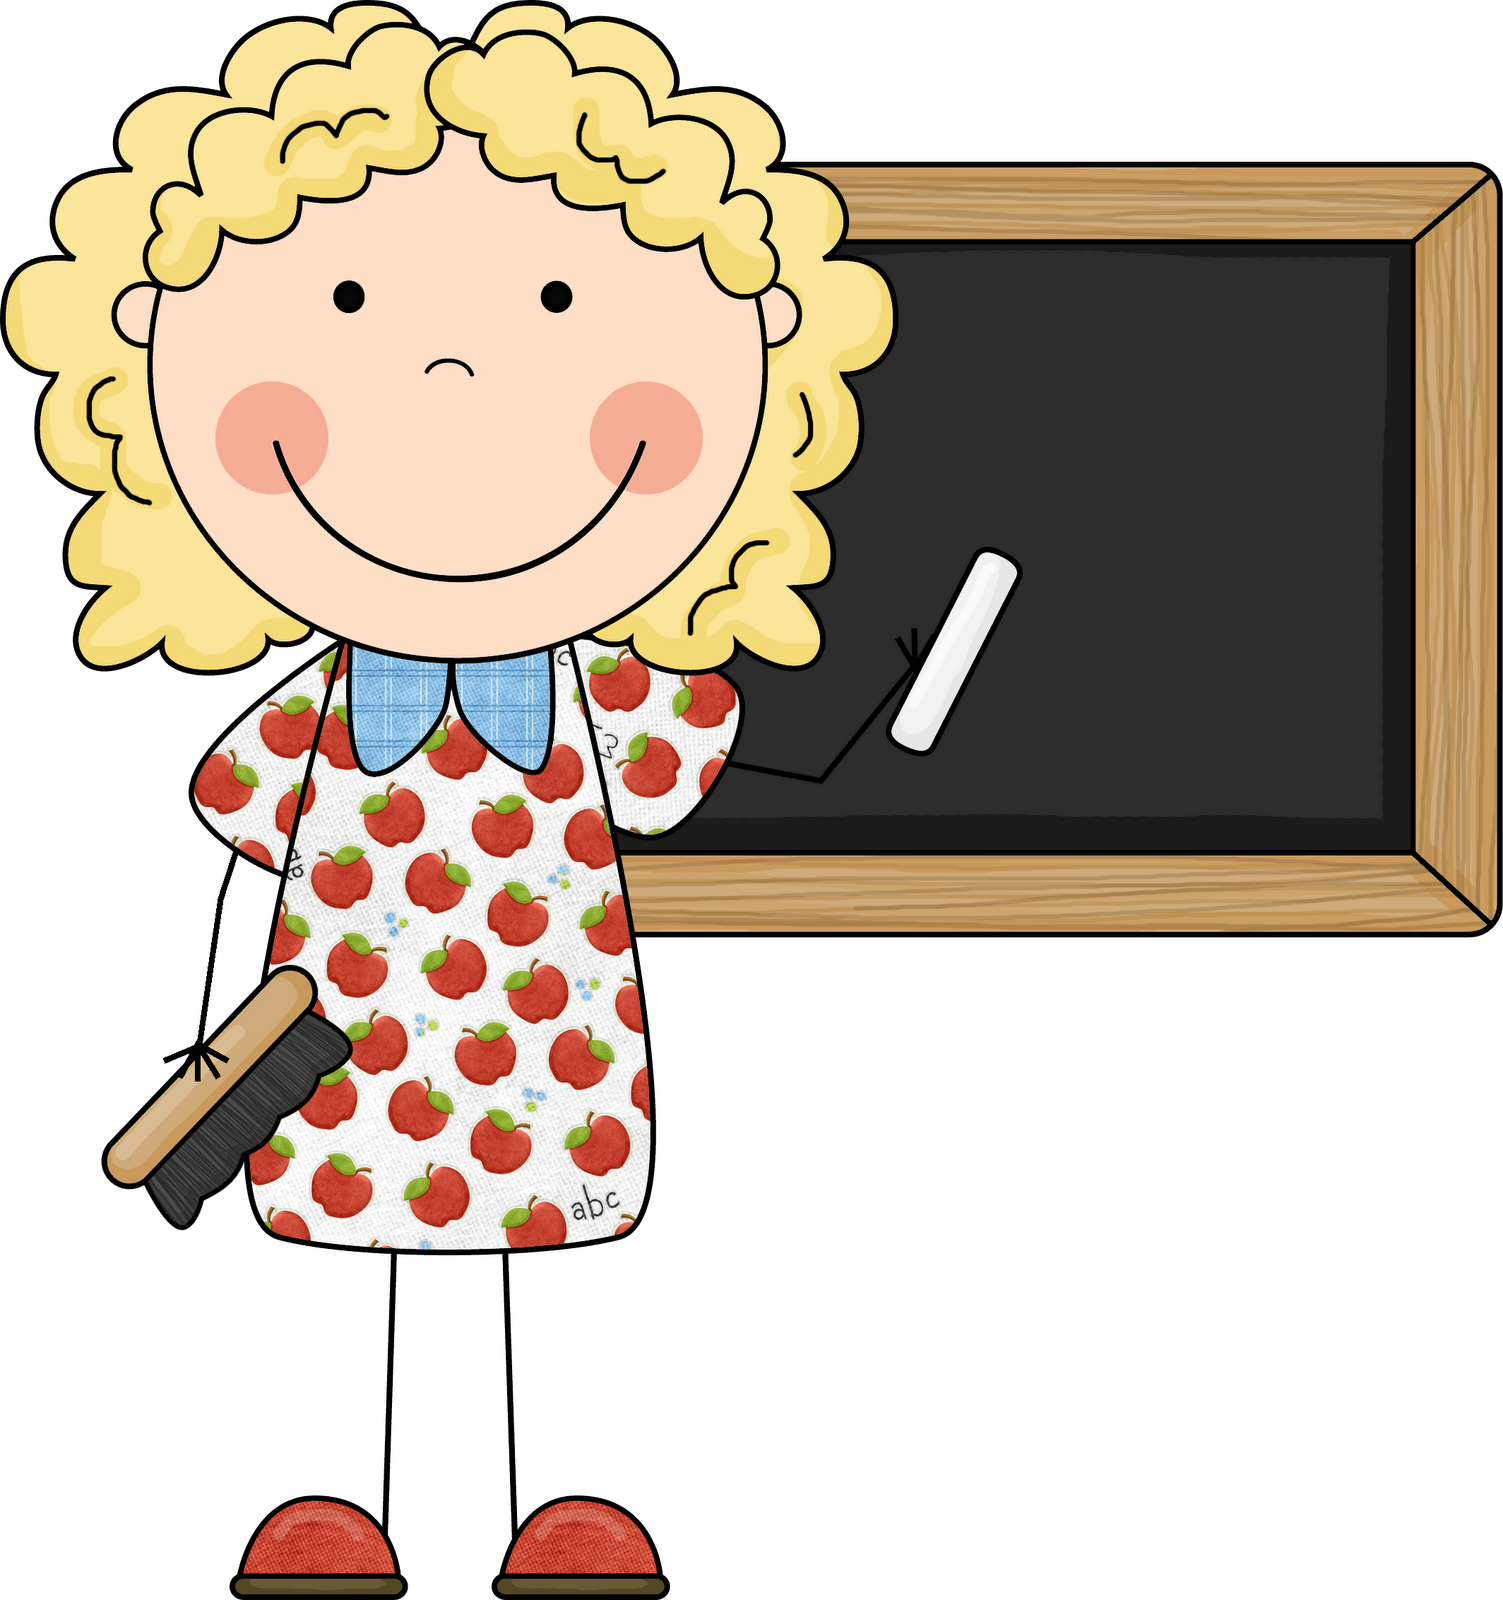 image transparent stock Clip art for clipartix. Drawing teacher english